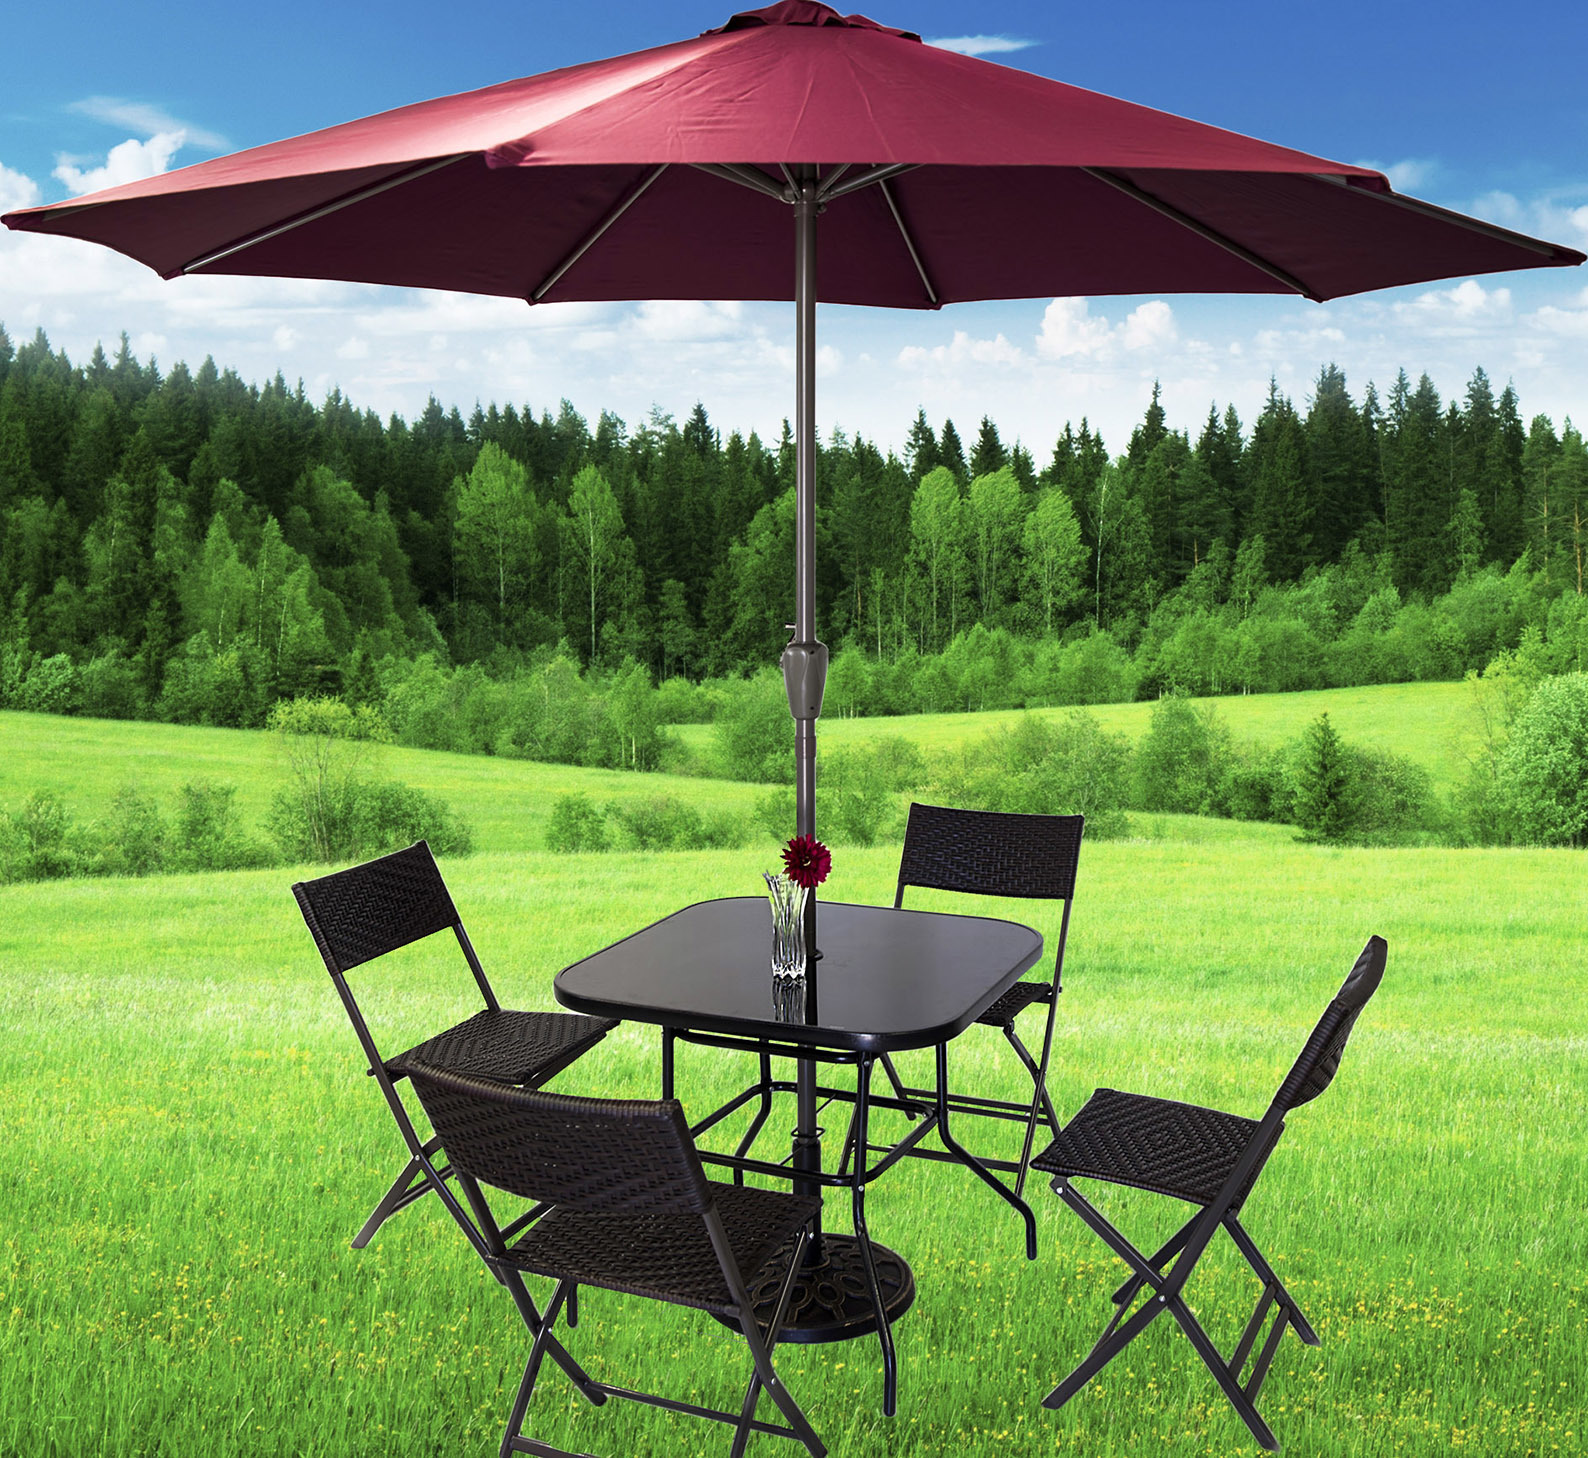 Alfresco 7 Piece Outdoor Setting (Maroon Umbrella & Stand, 4 Rattan Chairs, Square Table)